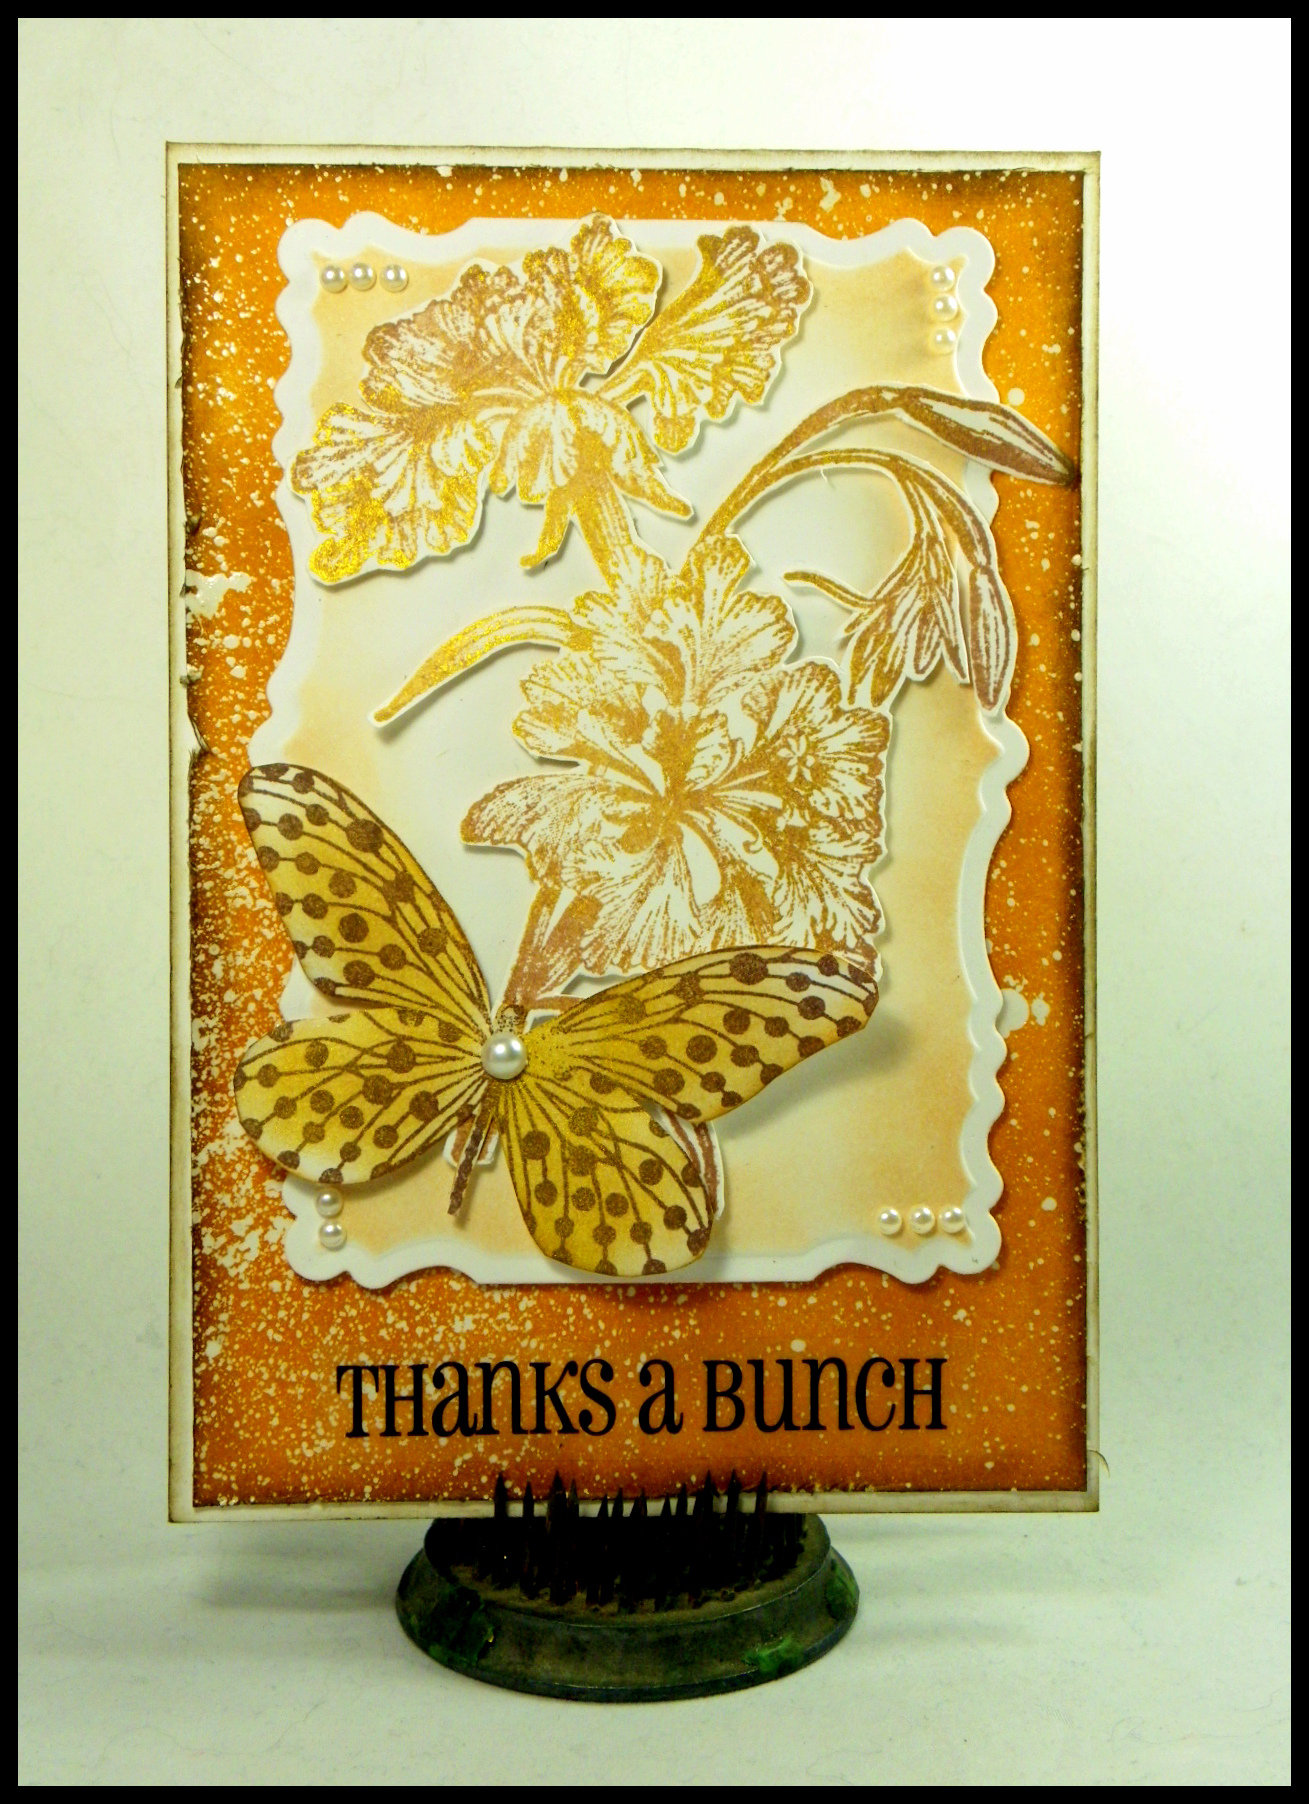 Delicata Ink to Make a Thanks a Bunch Butterfly Card